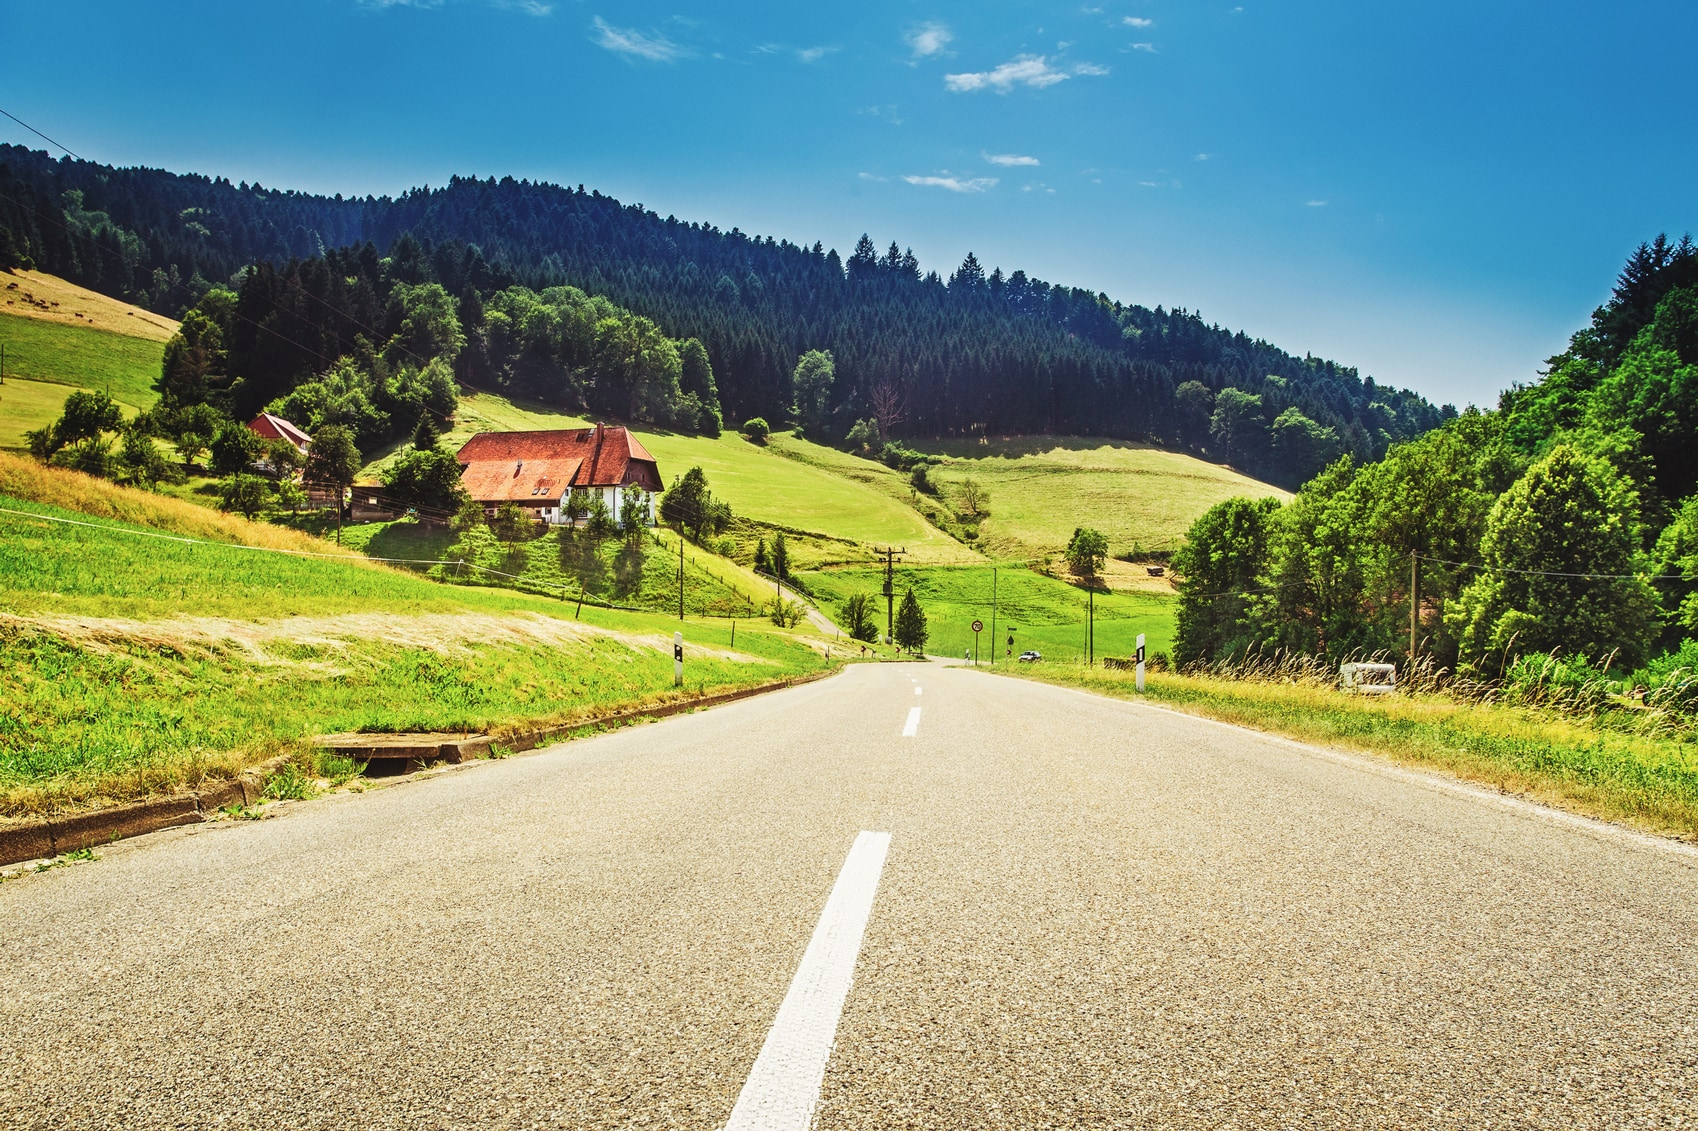 Scenic Driving Routes Black-Forest-www.istockphoto.comgbphotoscenic-countryside-landscape-with-country-road-old-house-in-germany-gm639473738-115269015-Britus